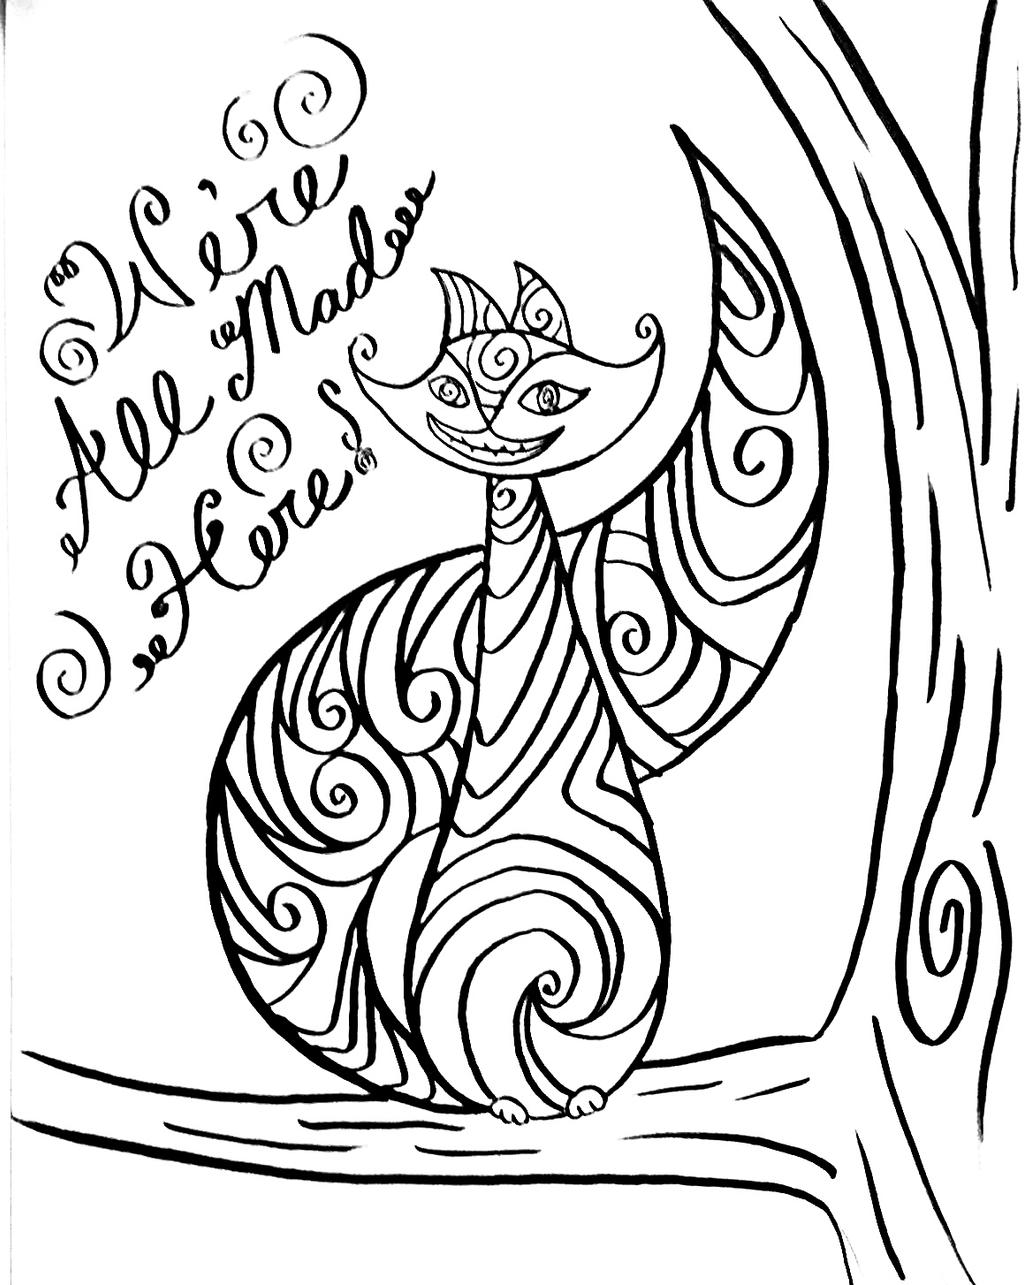 cheshire cat coloring page - cheshire cat color page by ashtreefae on deviantart